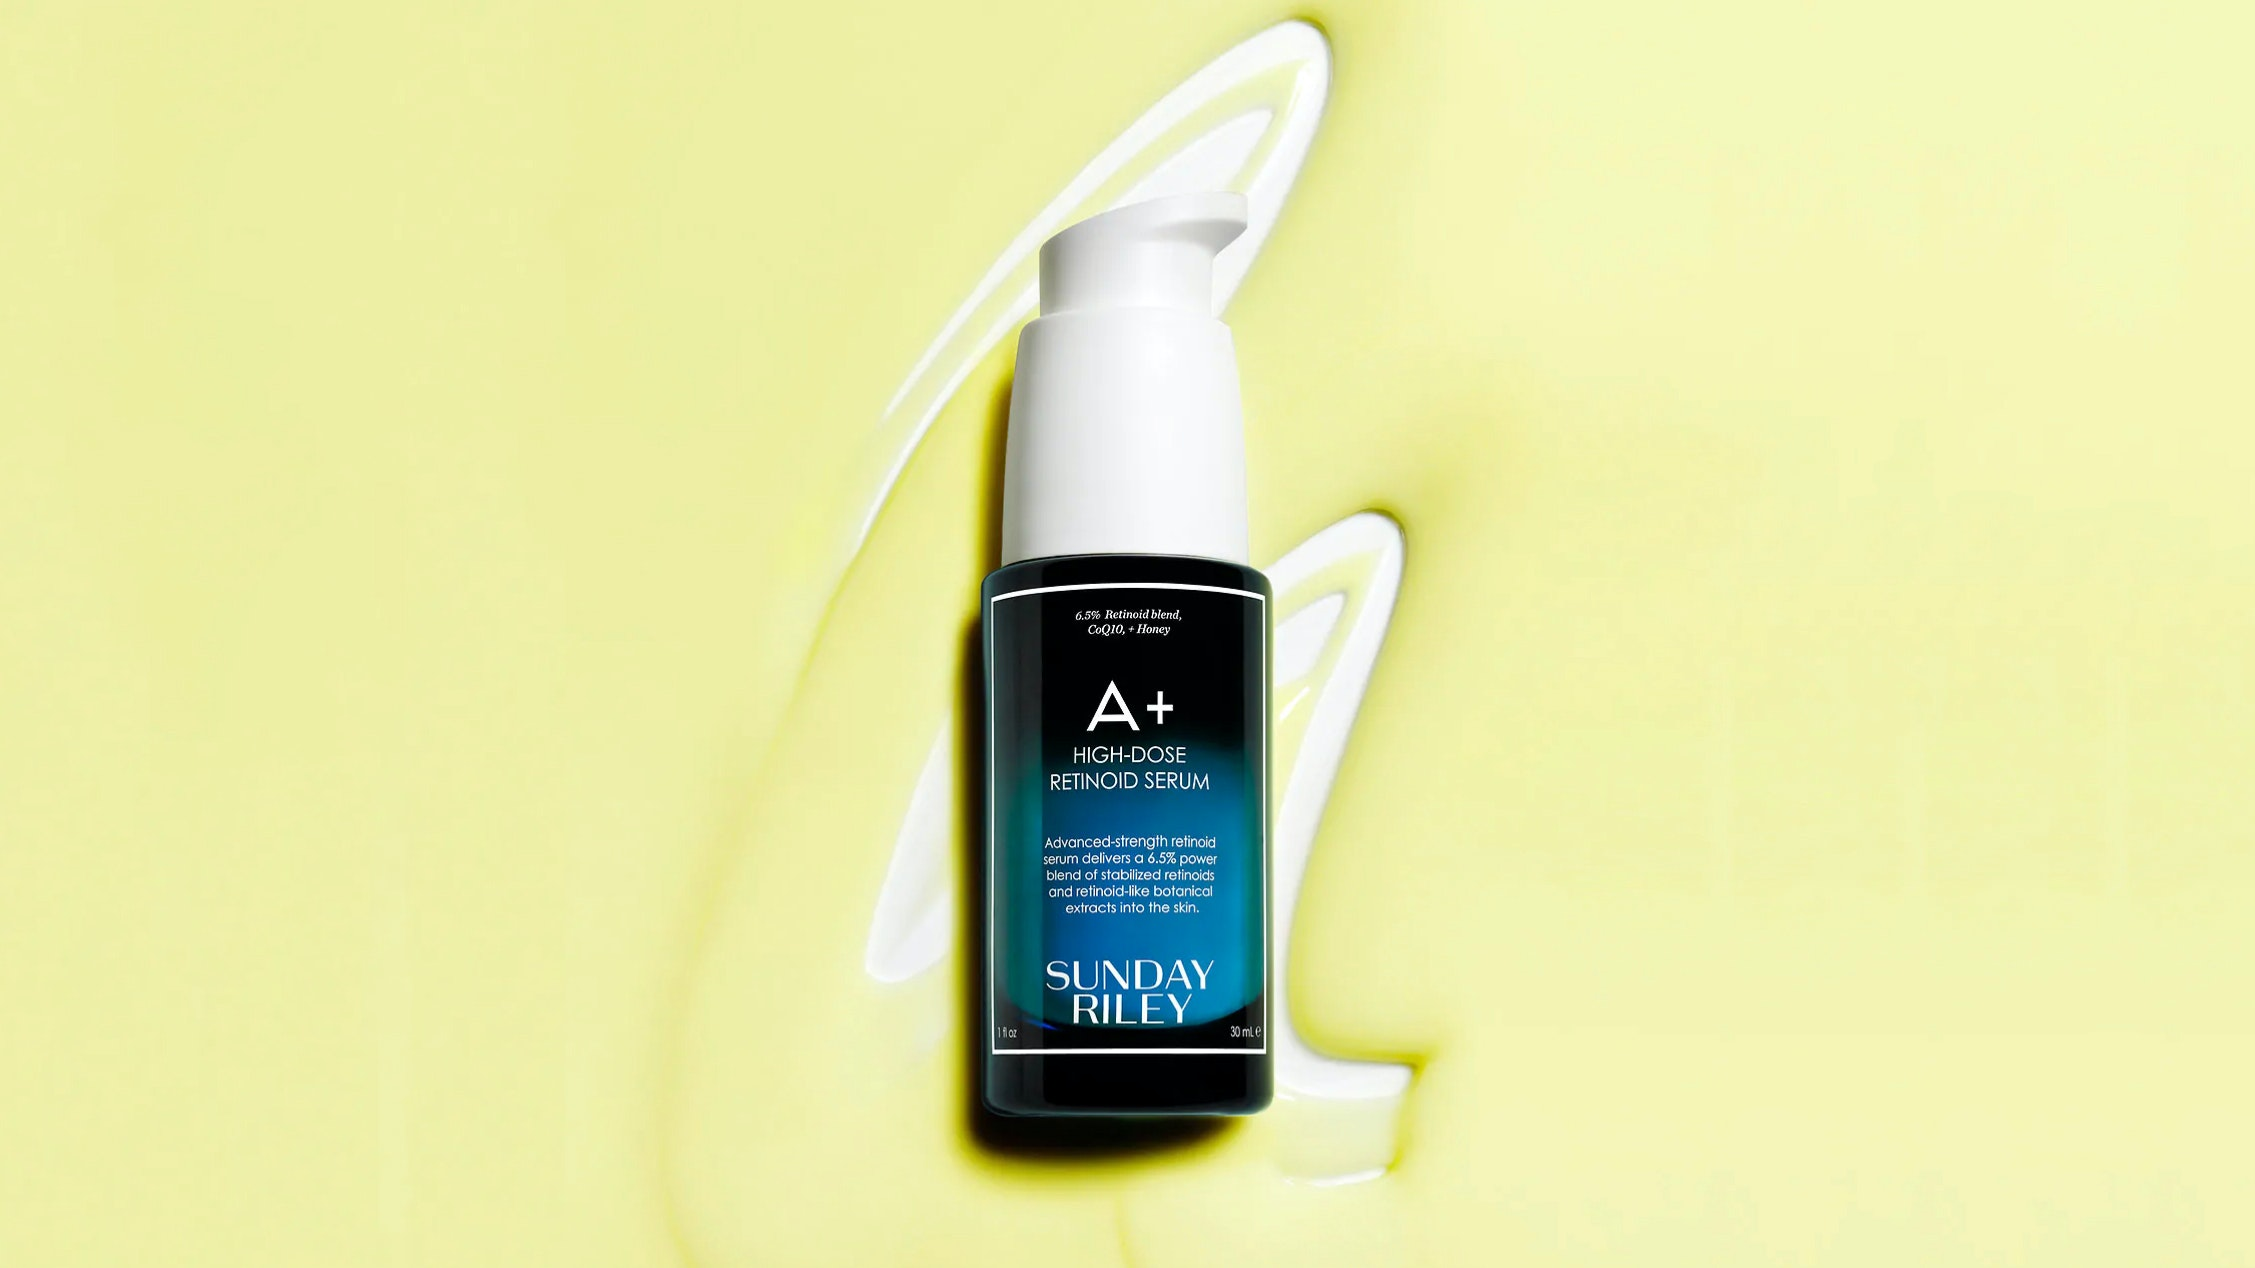 I Tested the Sunday Riley Retinol Serum Daily For 6 Weeks — These Are My Honest Thoughts